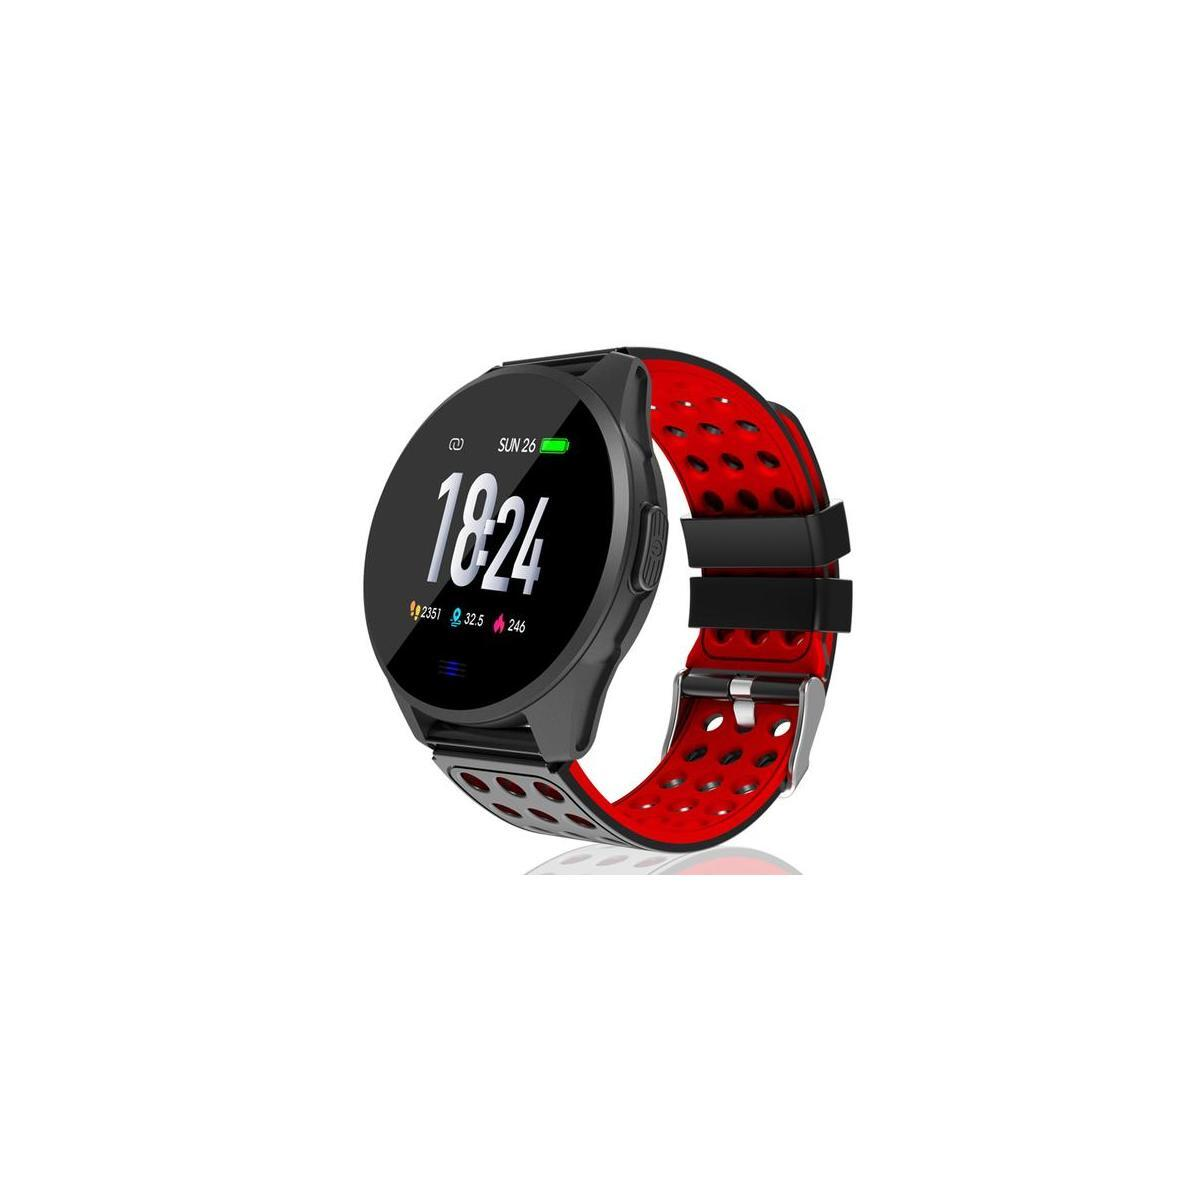 Kemier Fitness Tracker HR, Blood Pressure and Heart Rate Monitor Watch, Sleep Monitor Smart Watch for Women and Men, IP67 Waterproof Multiple Sports Modes Activity Tracker, Pedometer with Color Screen